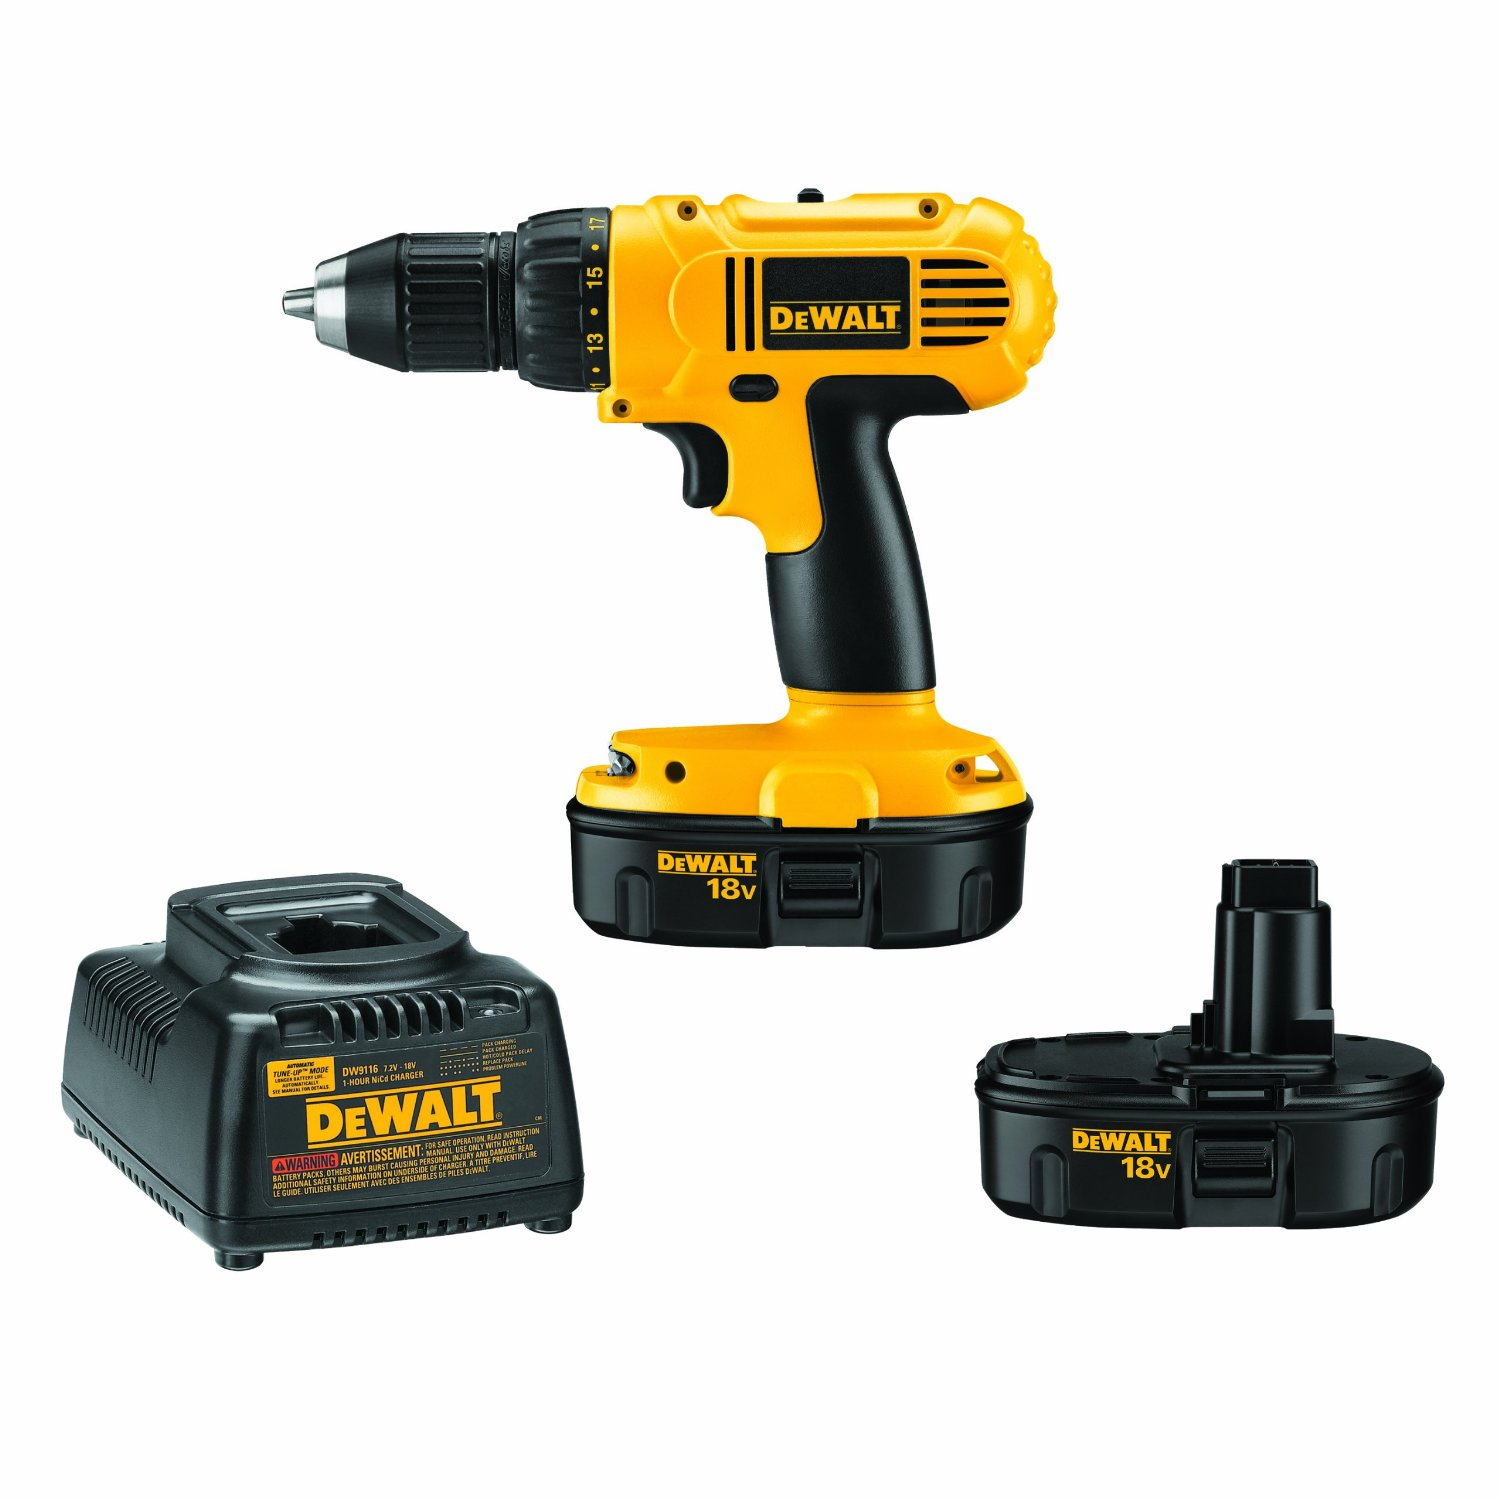 may-khoan-bat-vit-khong-day-dewalt-dc970k-2-18-volt